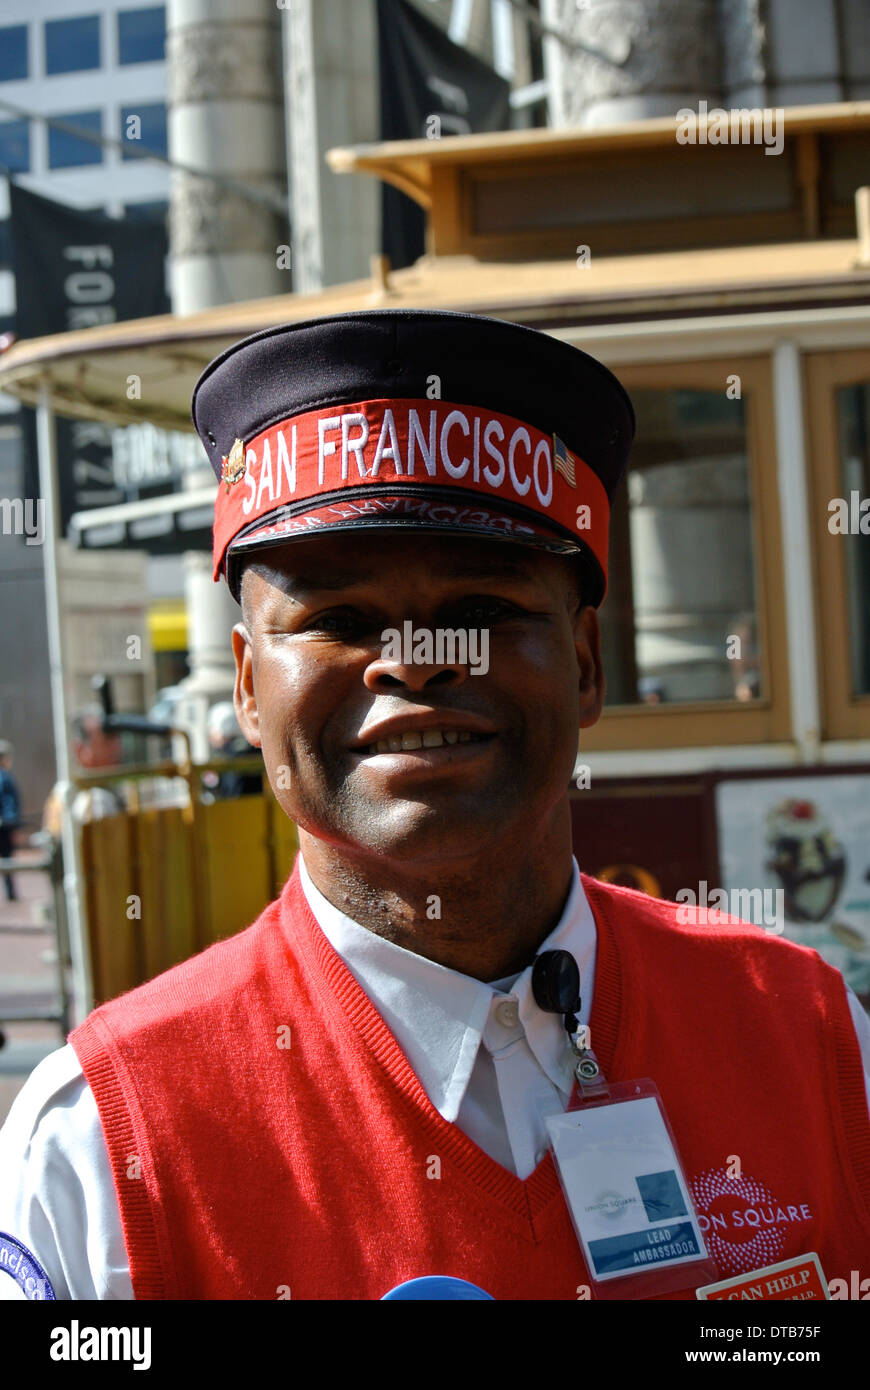 wayne lead ambassador for union square bid poses for camera at the Wowell st. promenade in San Francisco - Stock Image